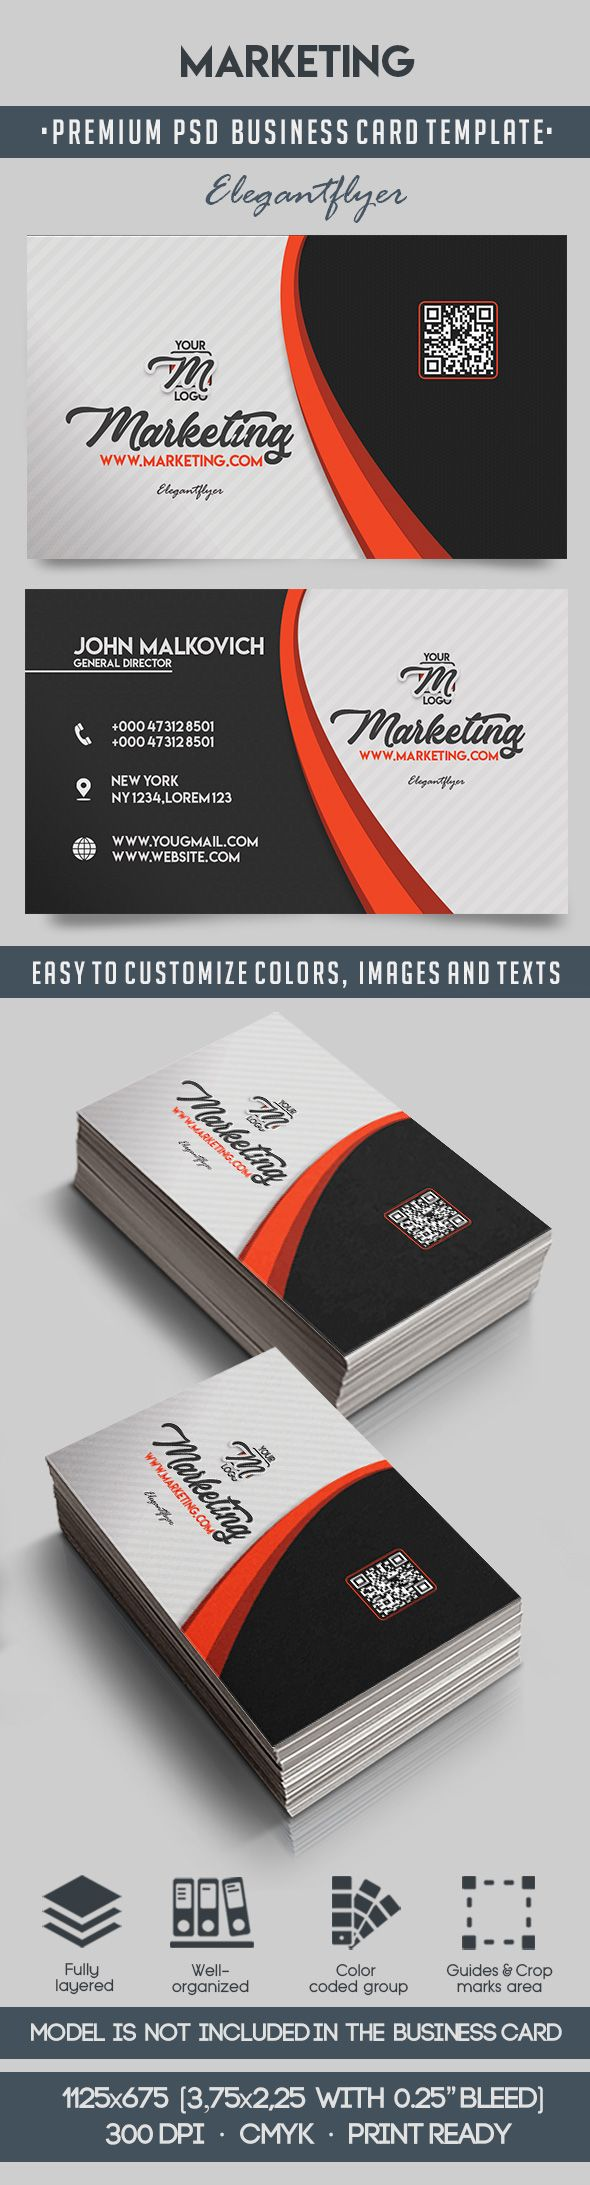 Marketing premium business card templates psd by elegantflyer marketing premium business card templates psd wajeb Images